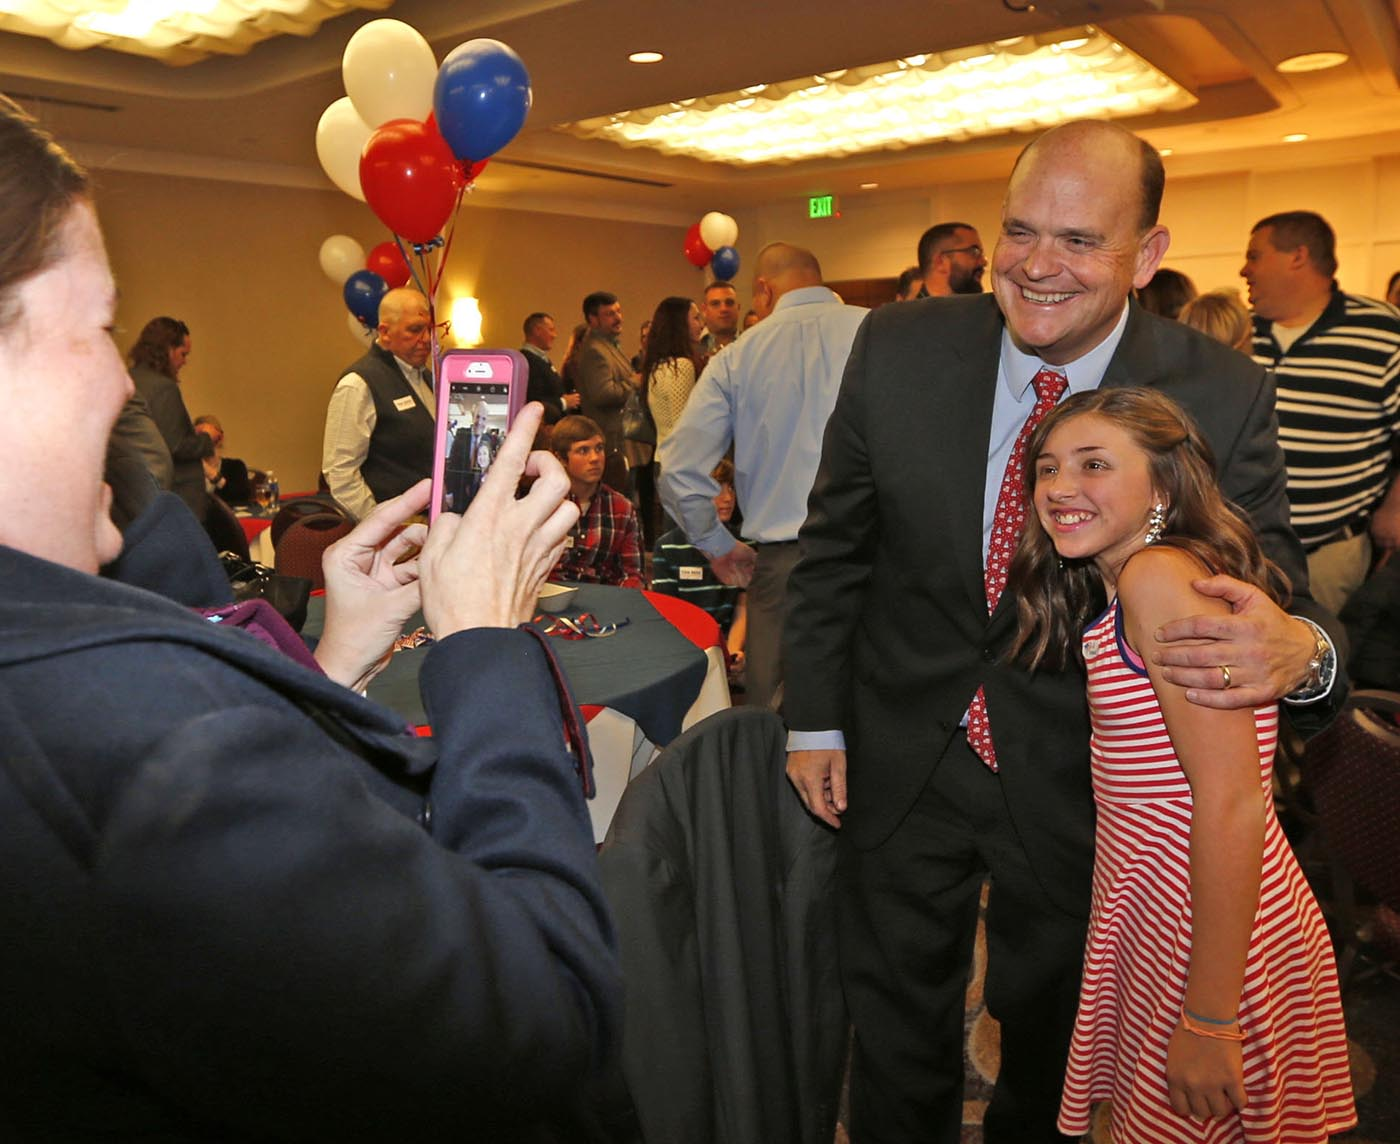 Rep. Tom Reed poses for a photo with Gianna Visconti, 11, of painted Post, NY, as her mom Michelle snaps the photo at his apparent victory party at the Radisson Hotel in Corning, NY onTuesday, Nov. 8, 2016. (Robert Kirkham/Buffalo News)